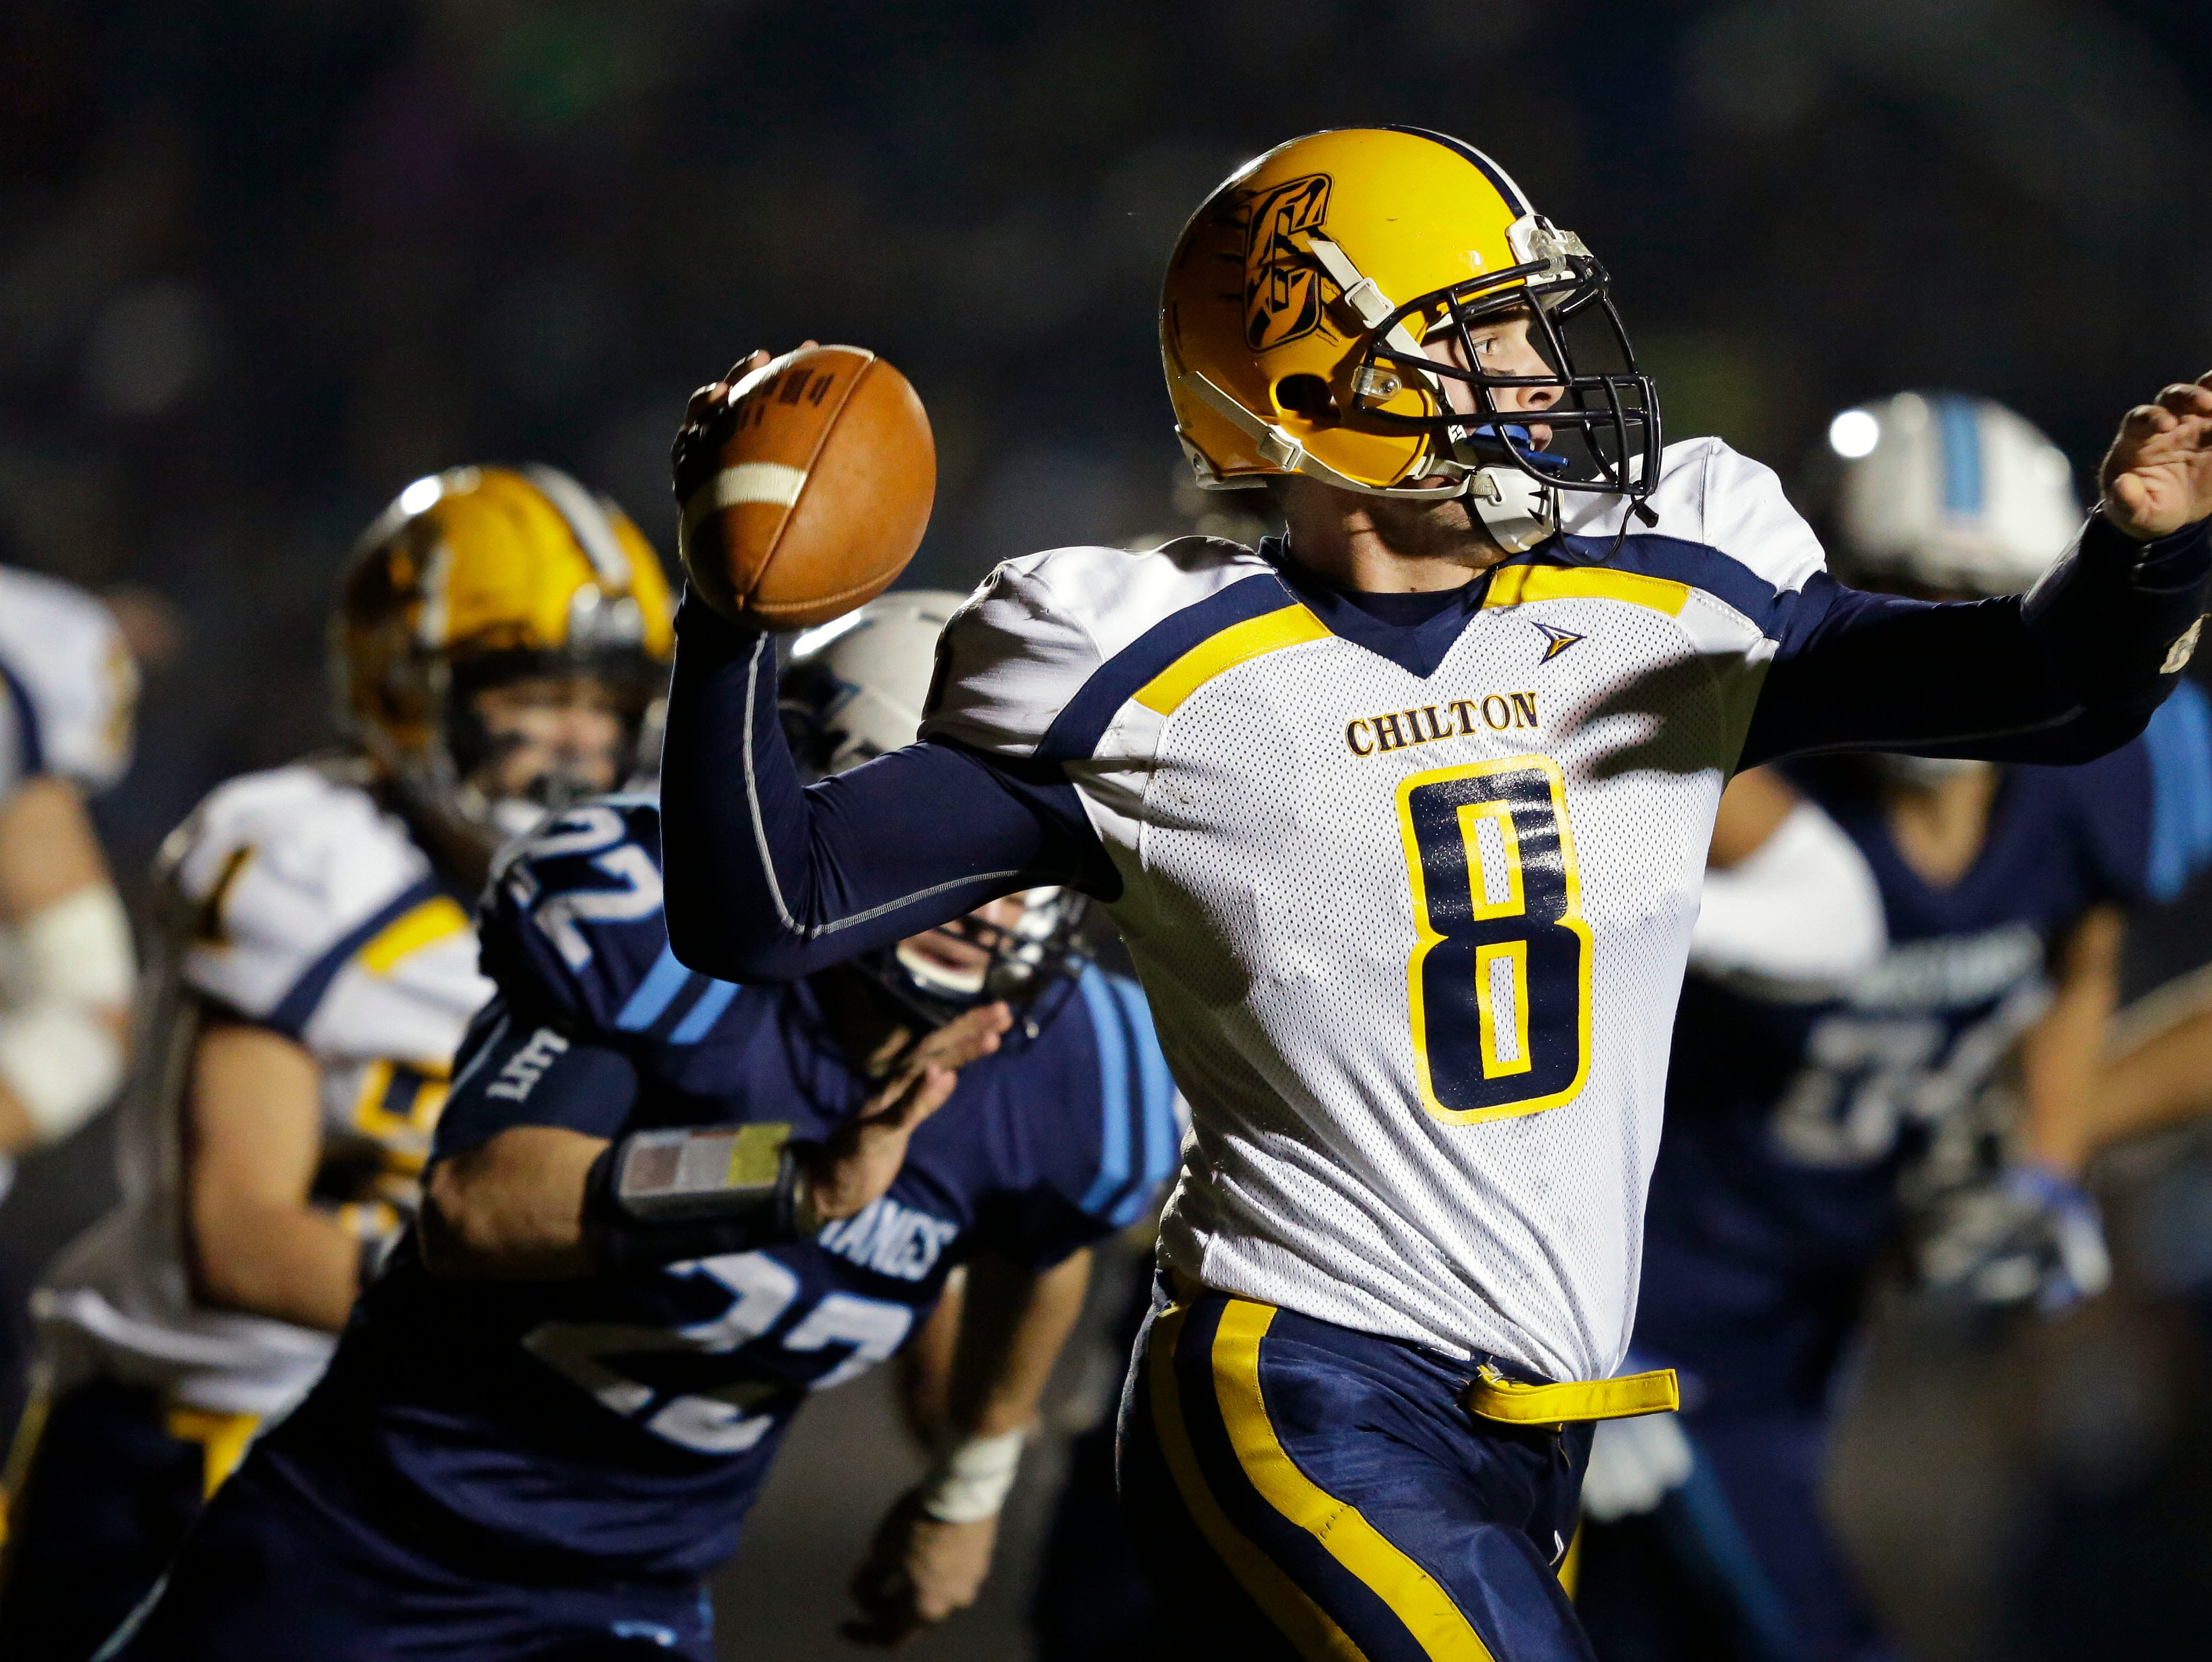 Chilton quarterback Jake Criter passes against undefeated Little Chute in a WIAA Division 4 second round football playoff game Friday, October 26, 2018, at Little Chute High School in Little Chute, Wis.Ron Page/USA TODAY NETWORK-Wisconsin